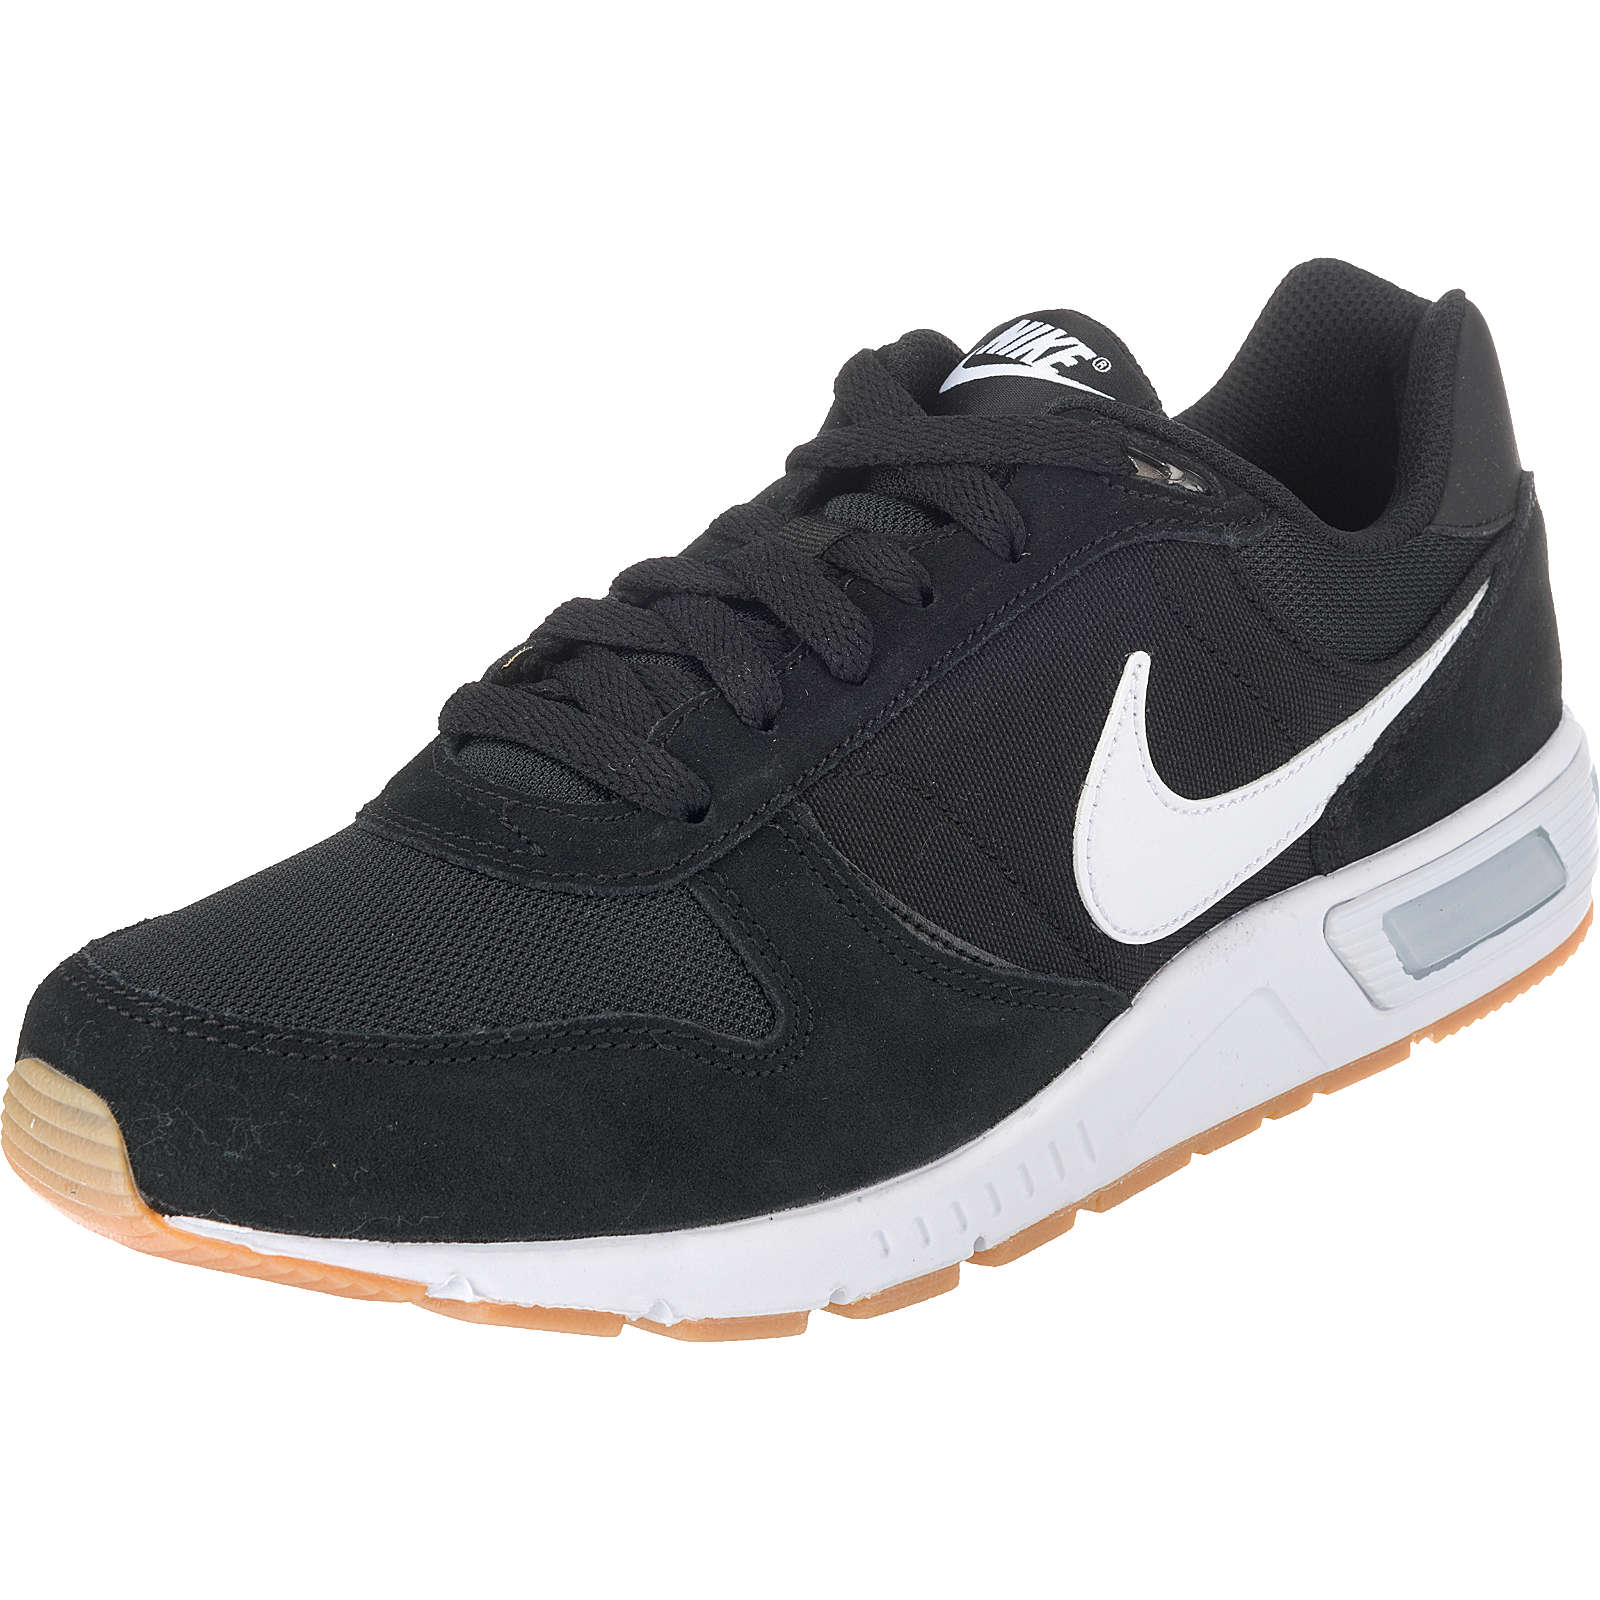 reputable site 724f2 d72b7 Nike Sportswear Nightgazer Sneakers Low schwarz Herren Gr. 45